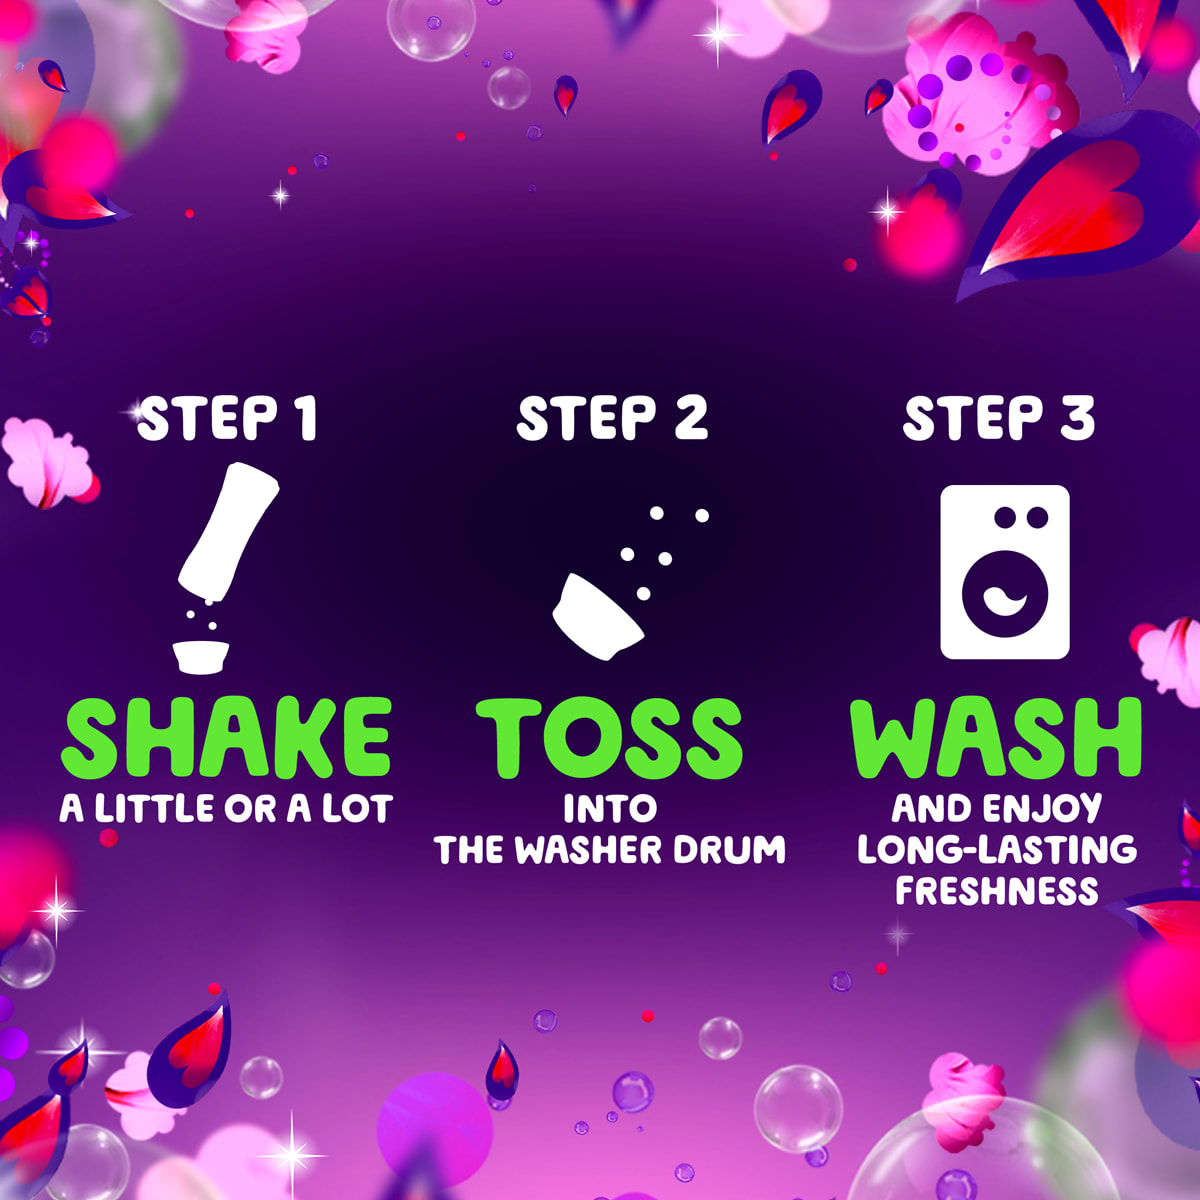 Usage instructions for the Gain Midnight Bloom Fireworks Scent Booster: step 1, shake, step 2, toss into the washer drum, step 3, wash the clothes